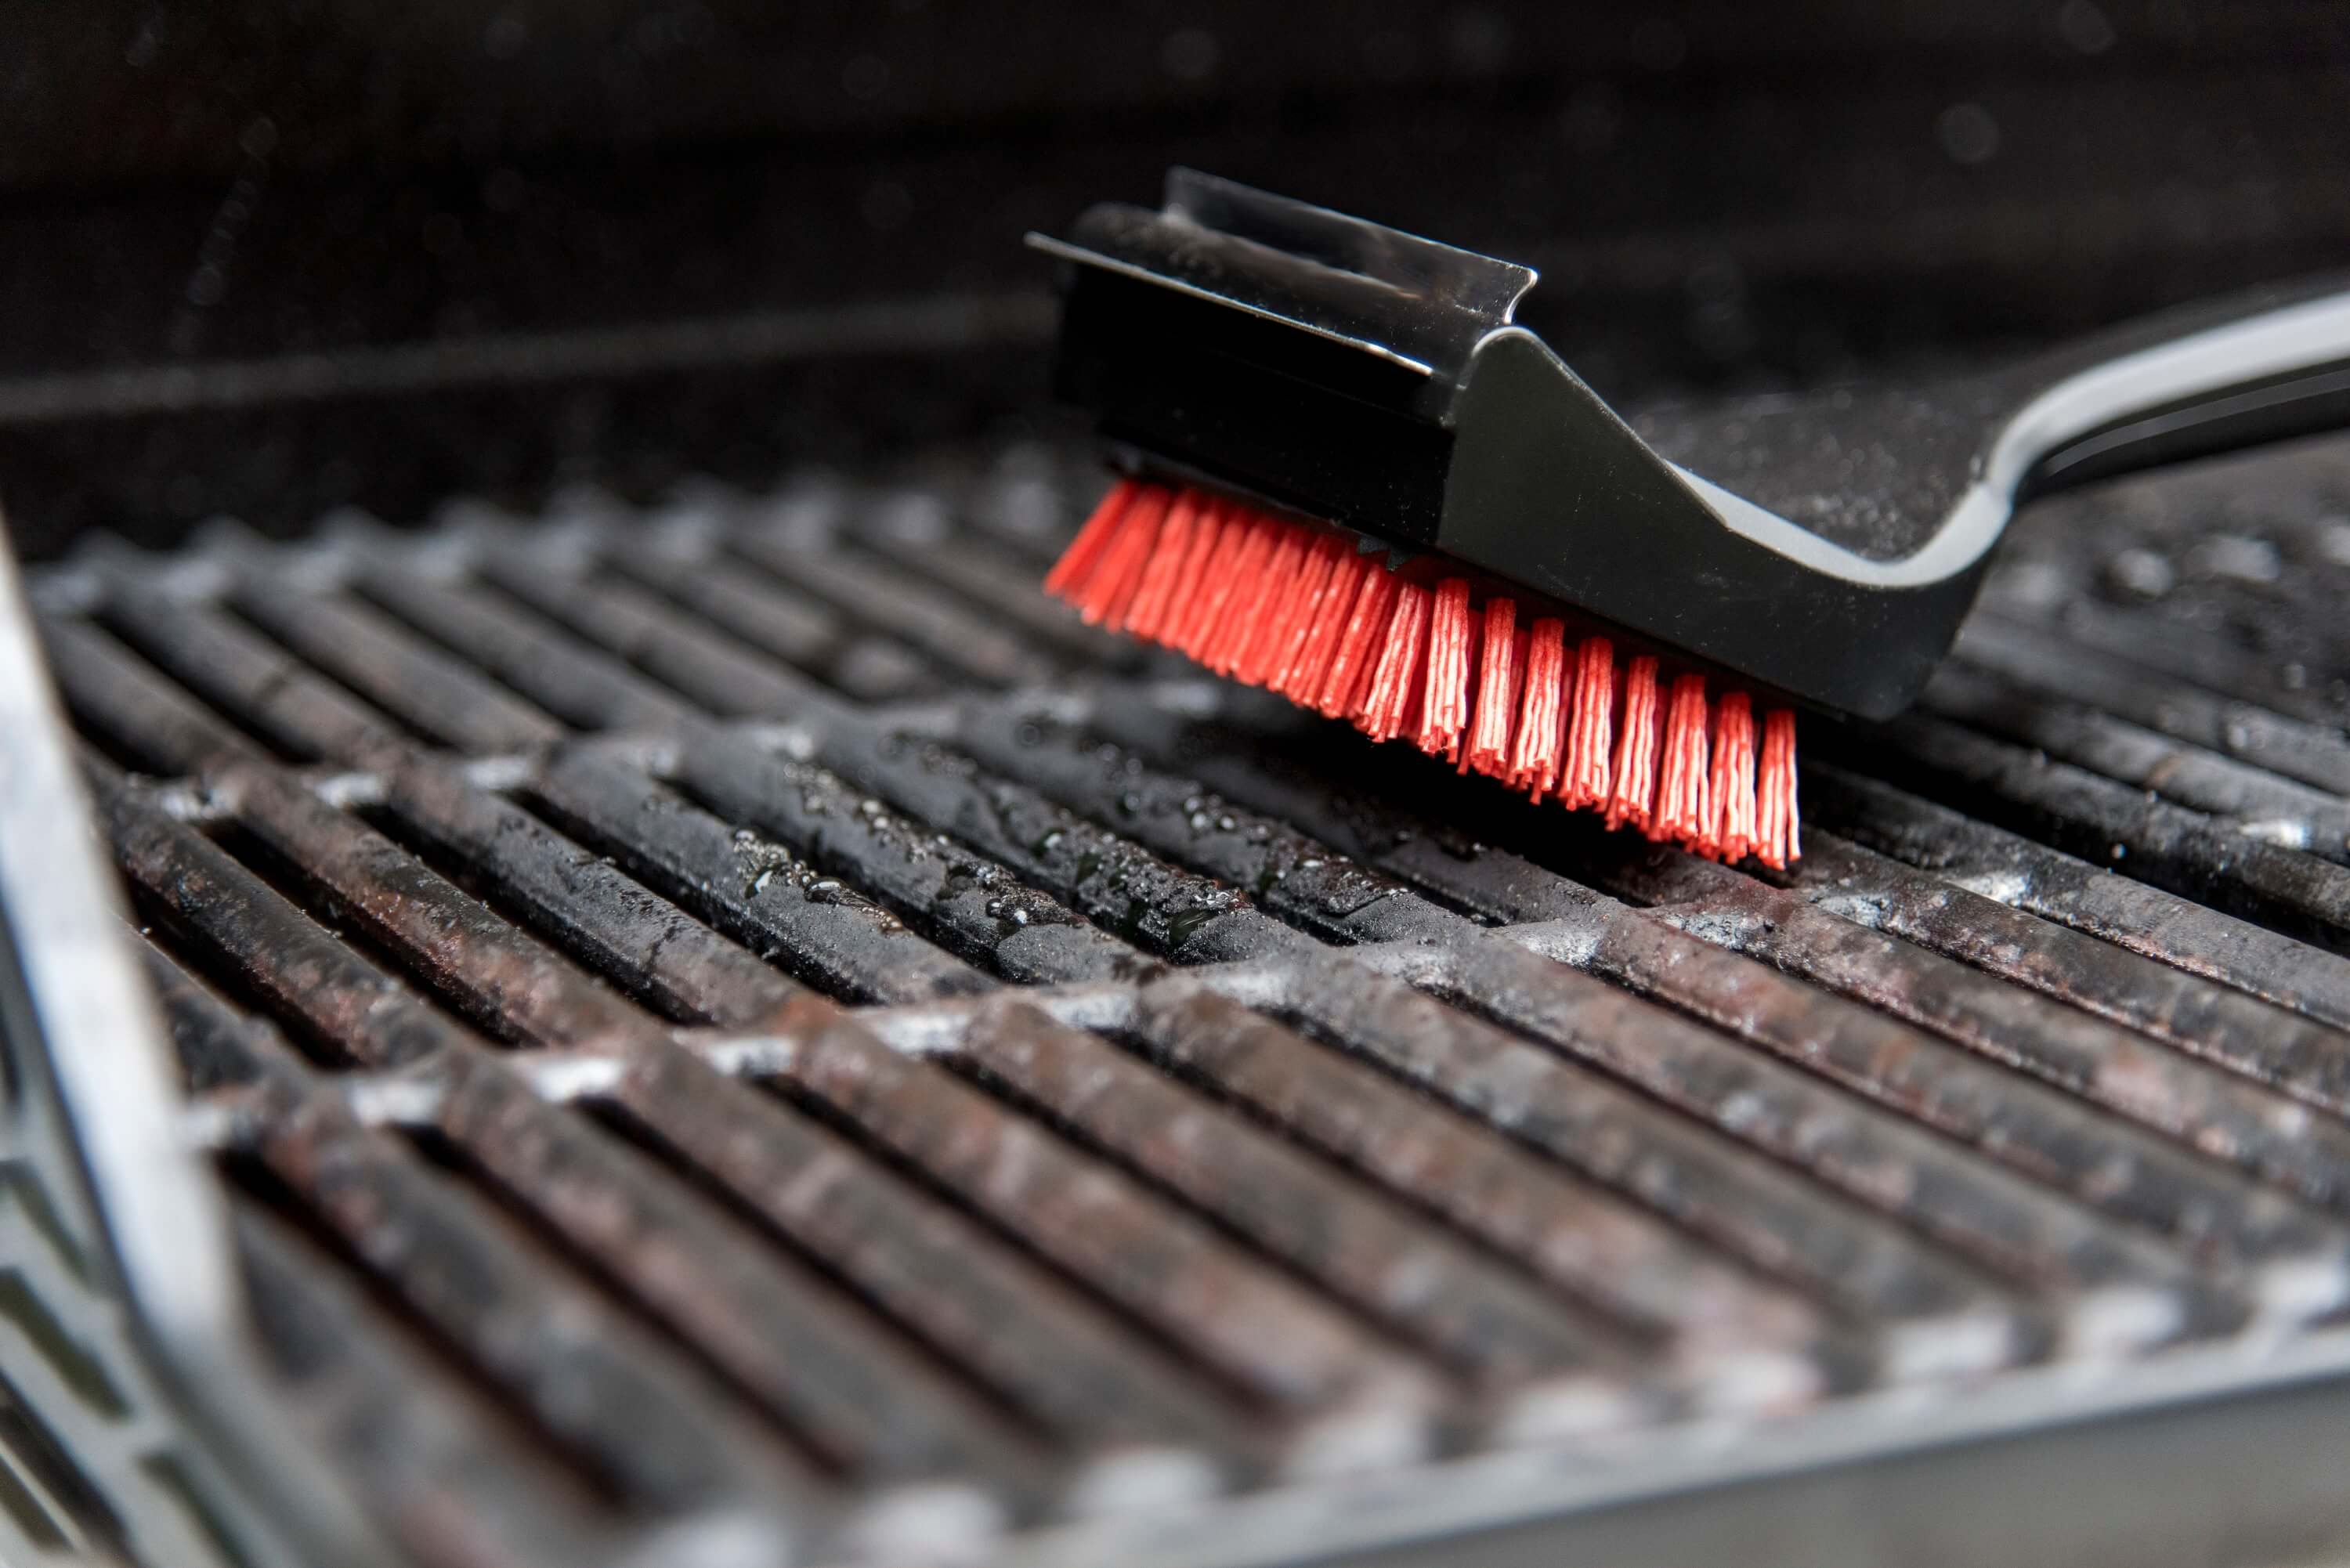 Good cleaning is half way to good barbecue